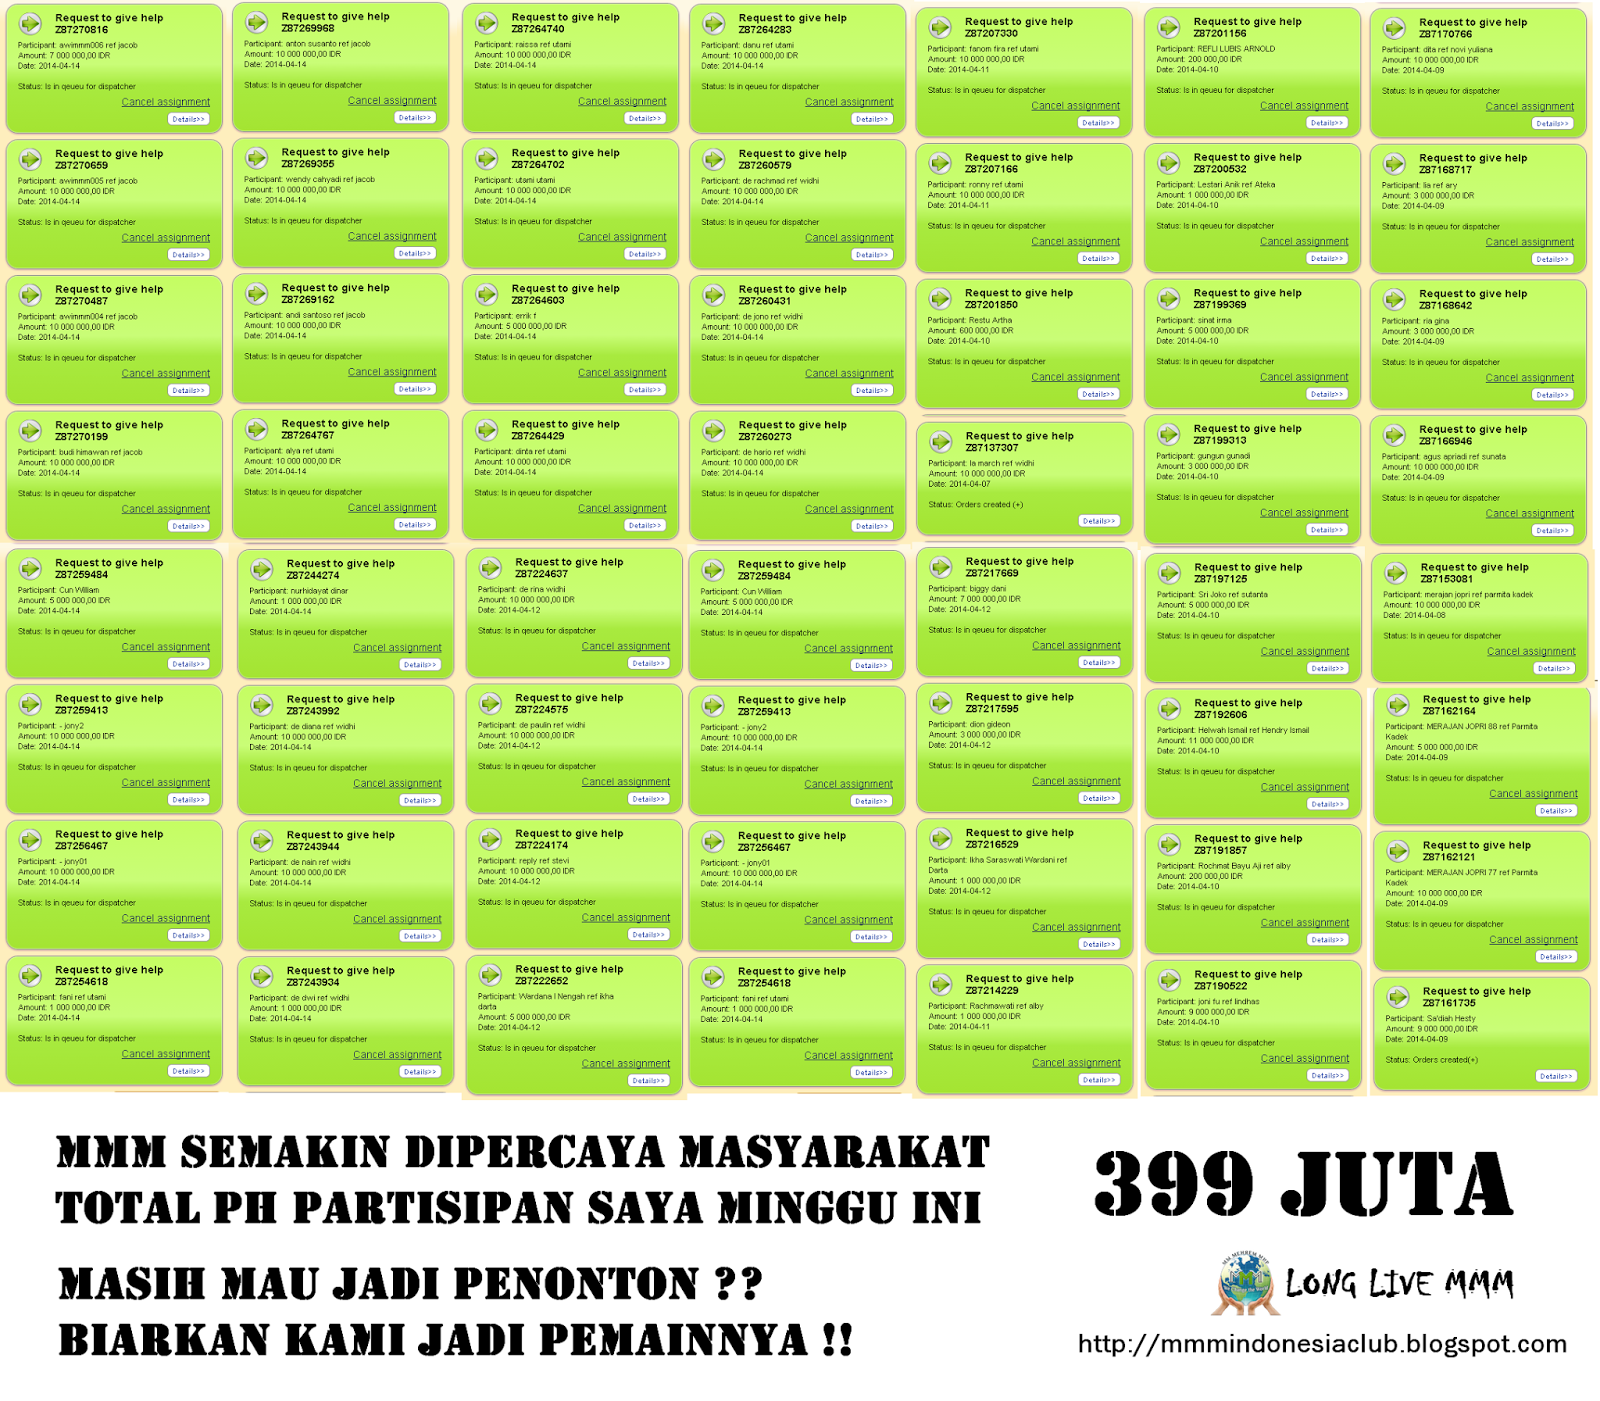 ph total 399 juta